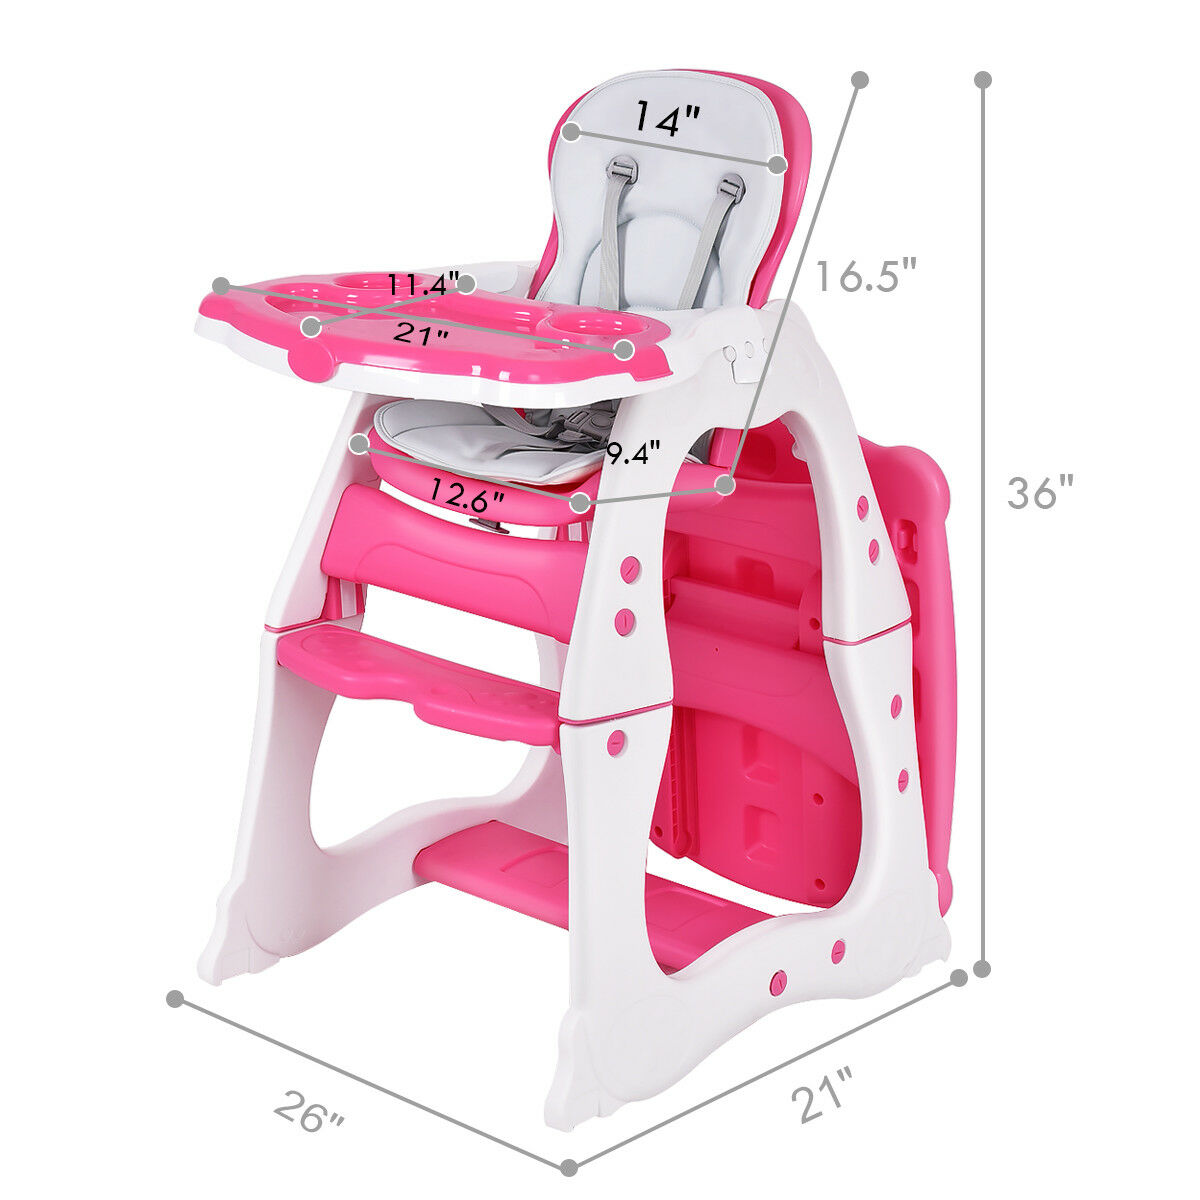 3 in 1 Baby High Chair Convertible Play Table Seat Booster Toddler Feeding Tray - image 7 de 10